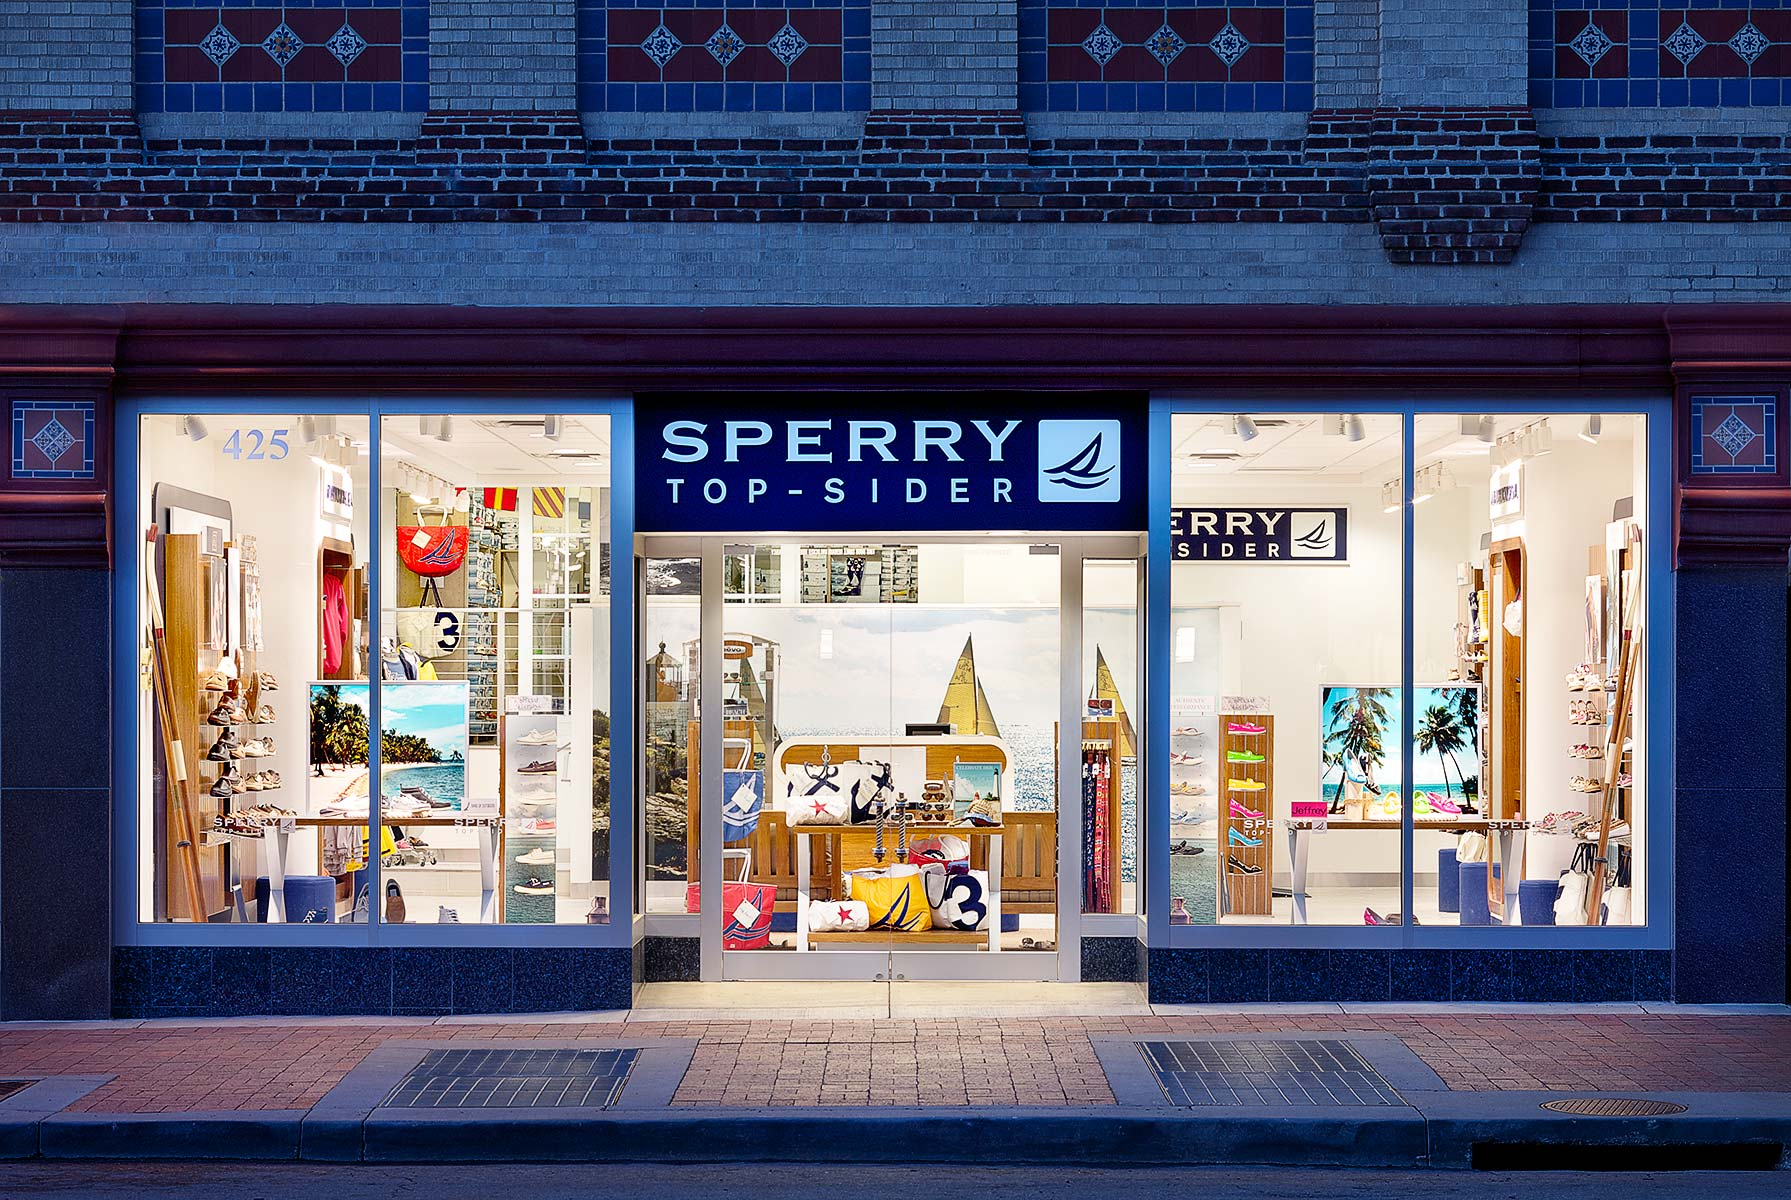 5310sperry1-22